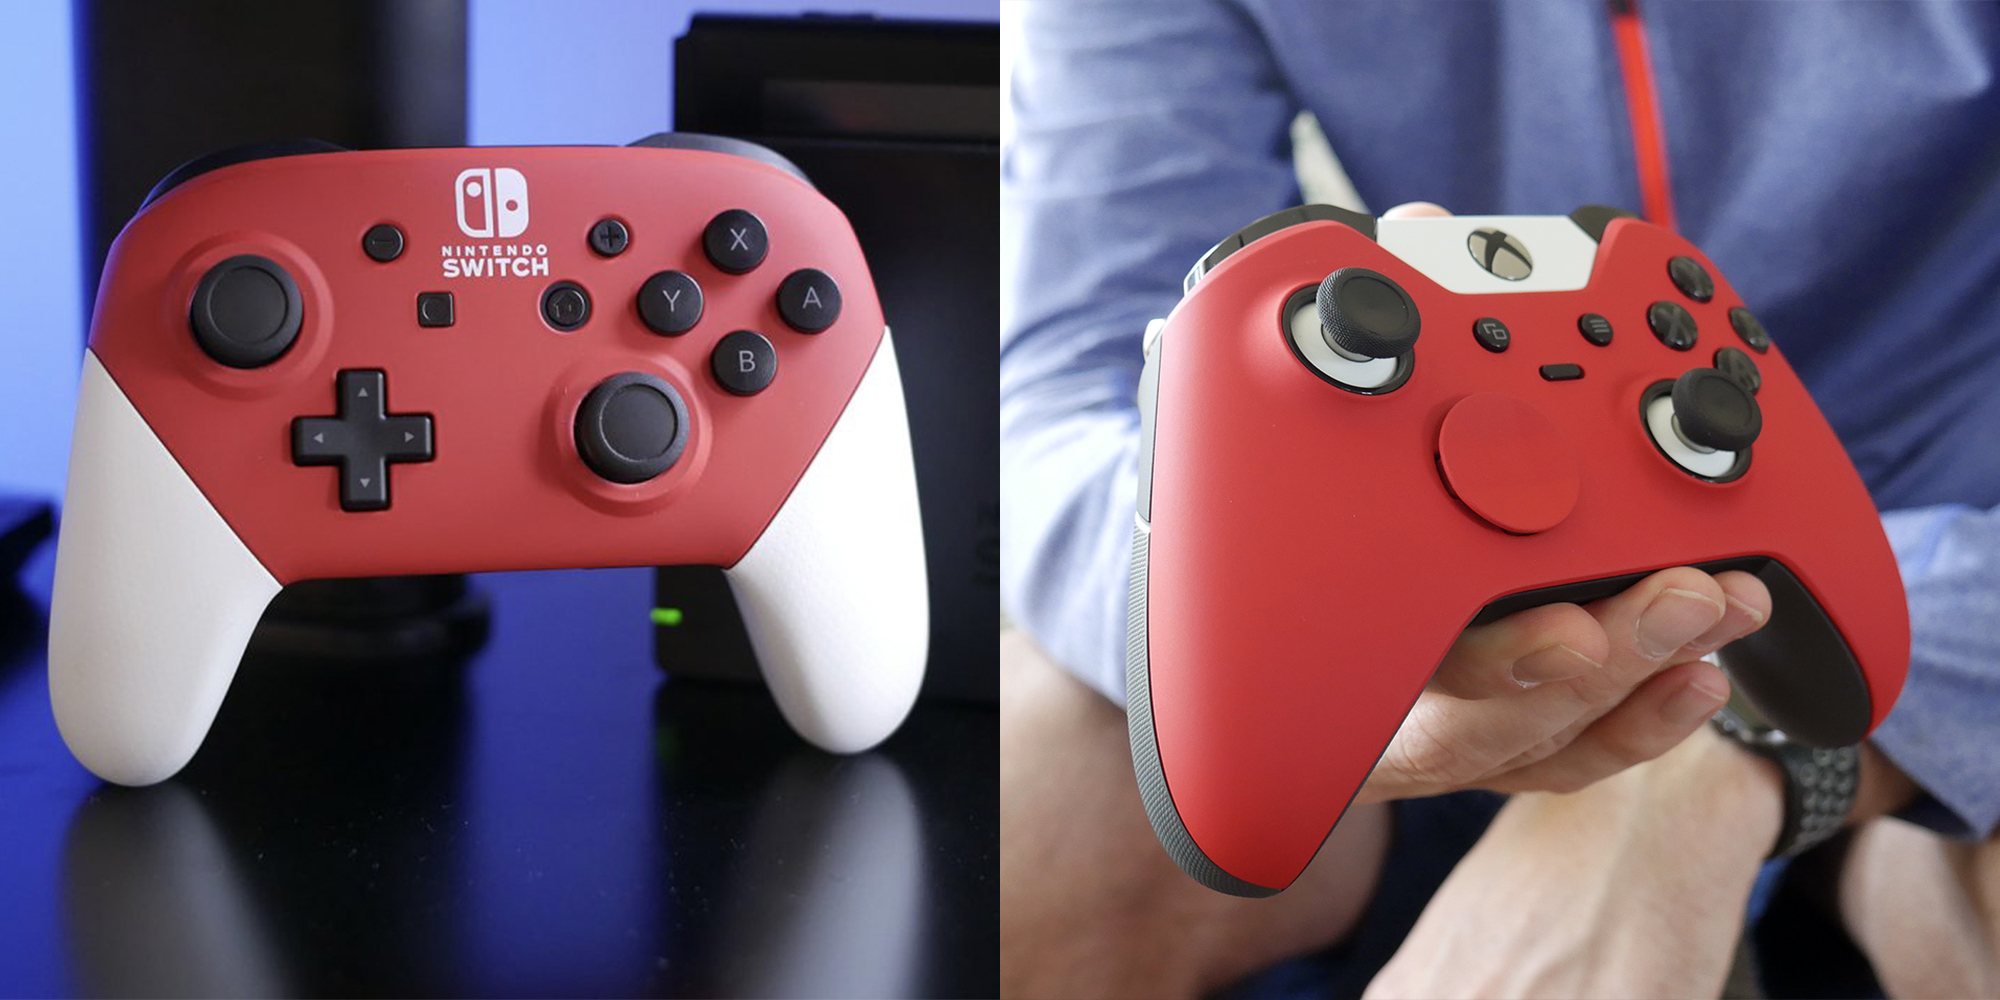 Hands-on with Colorware's custom controllers for Nintendo Switch, Xbox One, and PS4